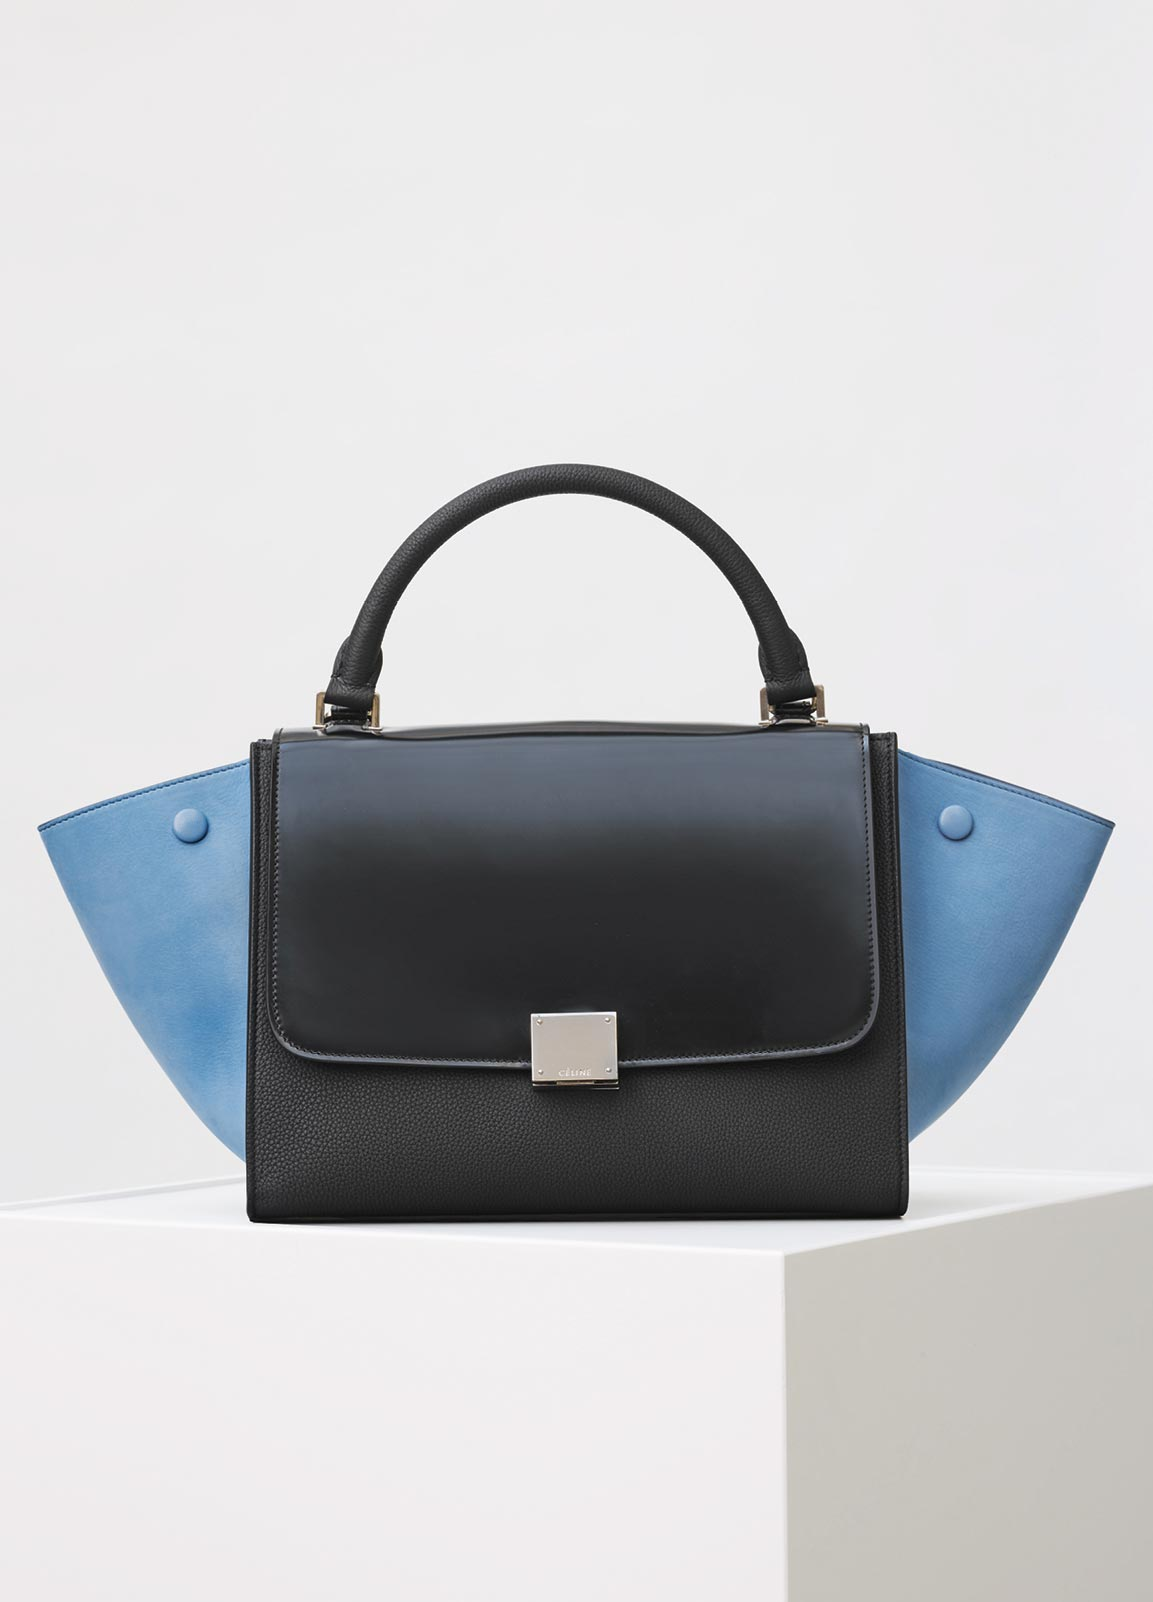 Celine Winter 2016 Bag Collection featuring Pastels  c4b834c58f4ce